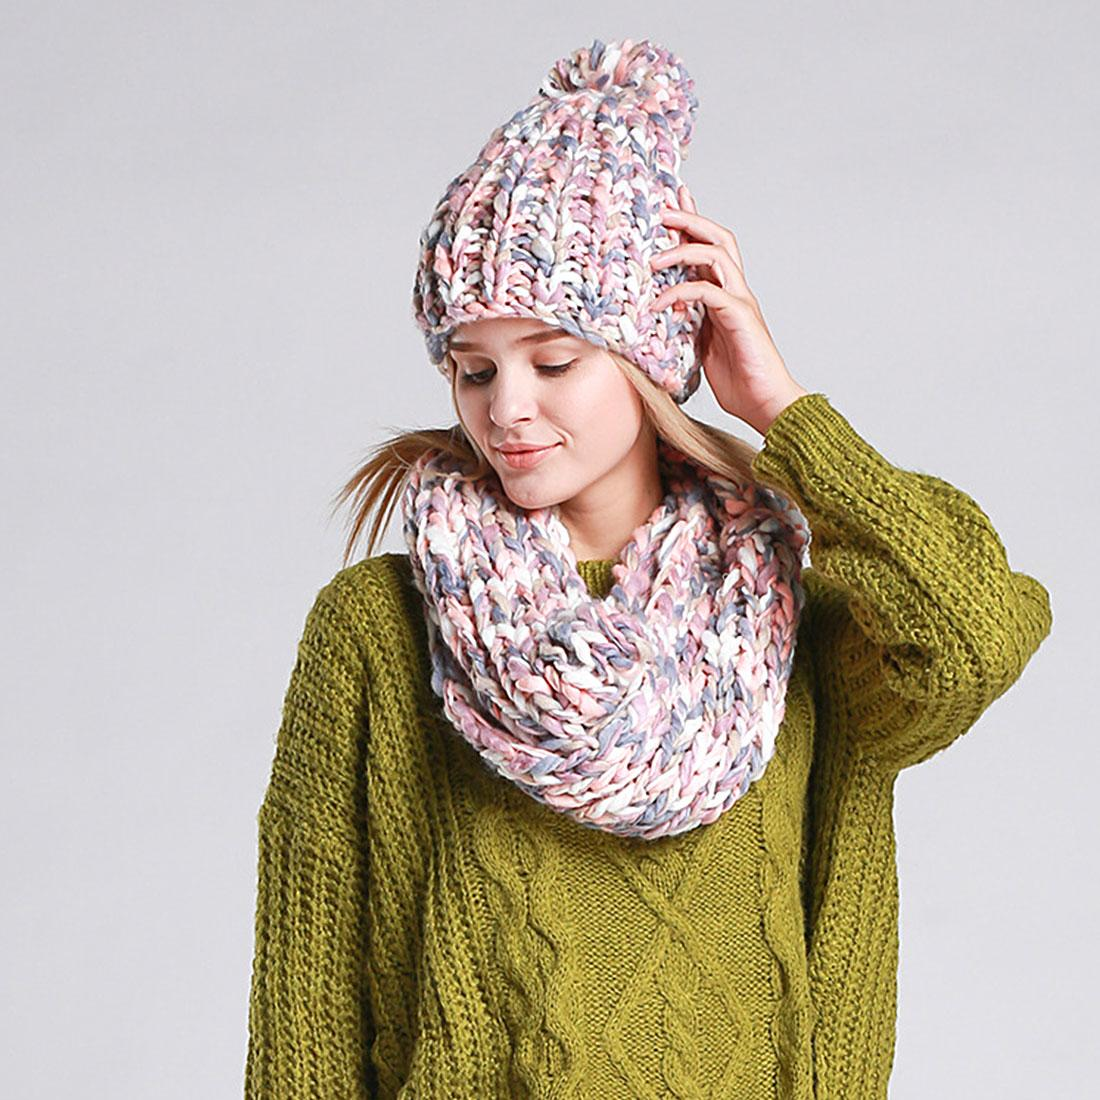 Charming Knit Winter Warm Hat And Scarf Set For Women Girl Beanies Thick  Female Bonnet Scarf Set Women Snood Knit Hat Hats And Caps From Jutie 7305d0630d9